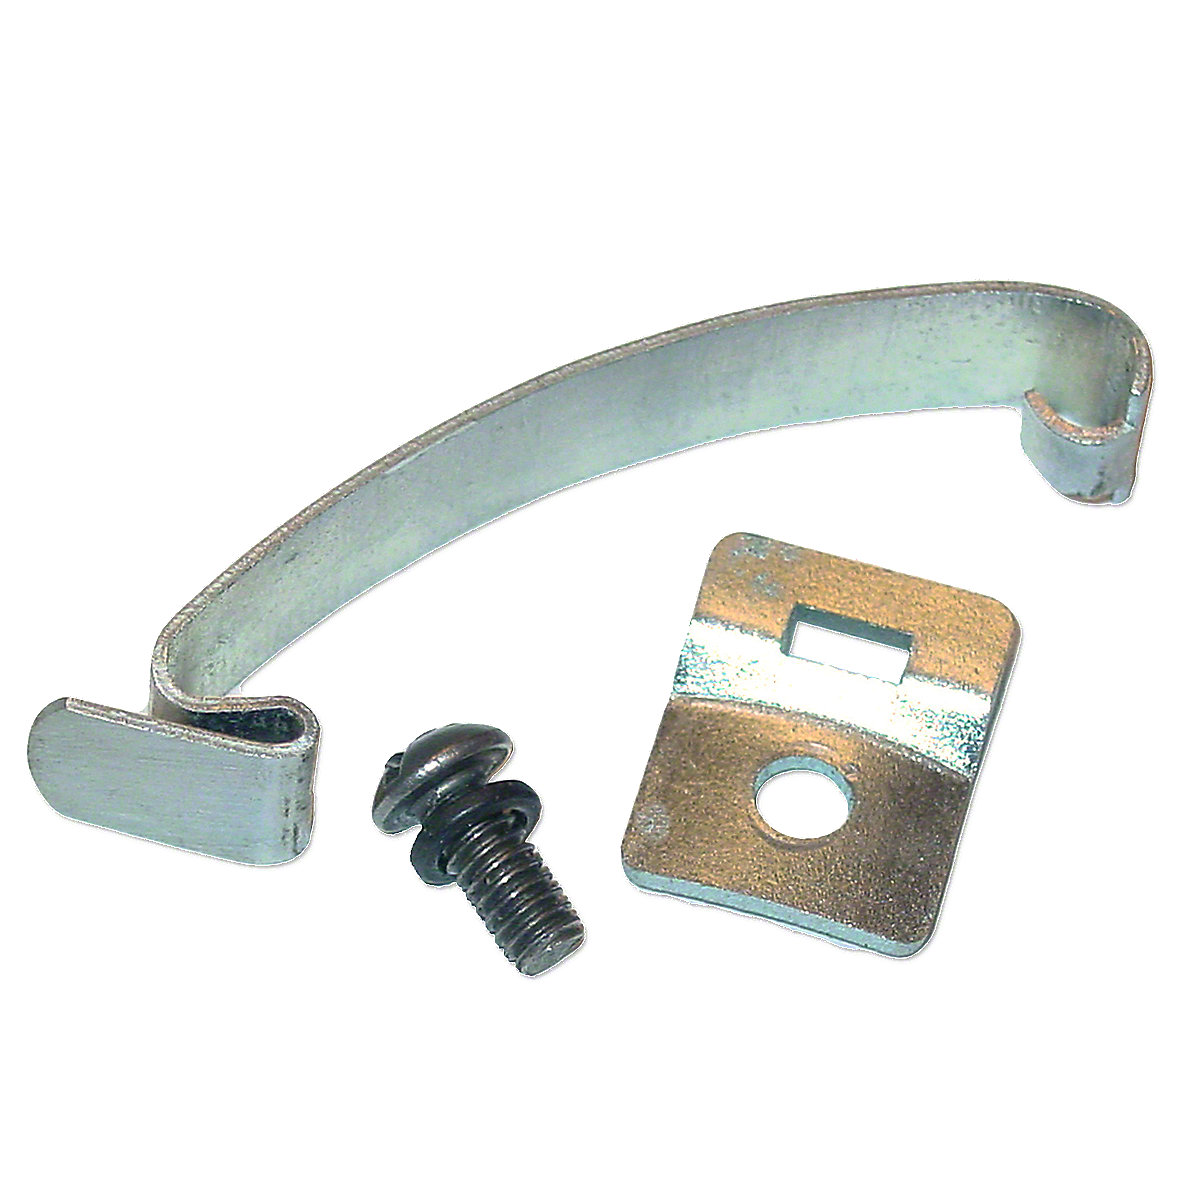 Delco Style Spring Clip With Shorter Bracket For Massey Ferguson: Super 90, 85, 88, 40, F40, TO20, TO30, TO35, 50, Massey Harris: 50.